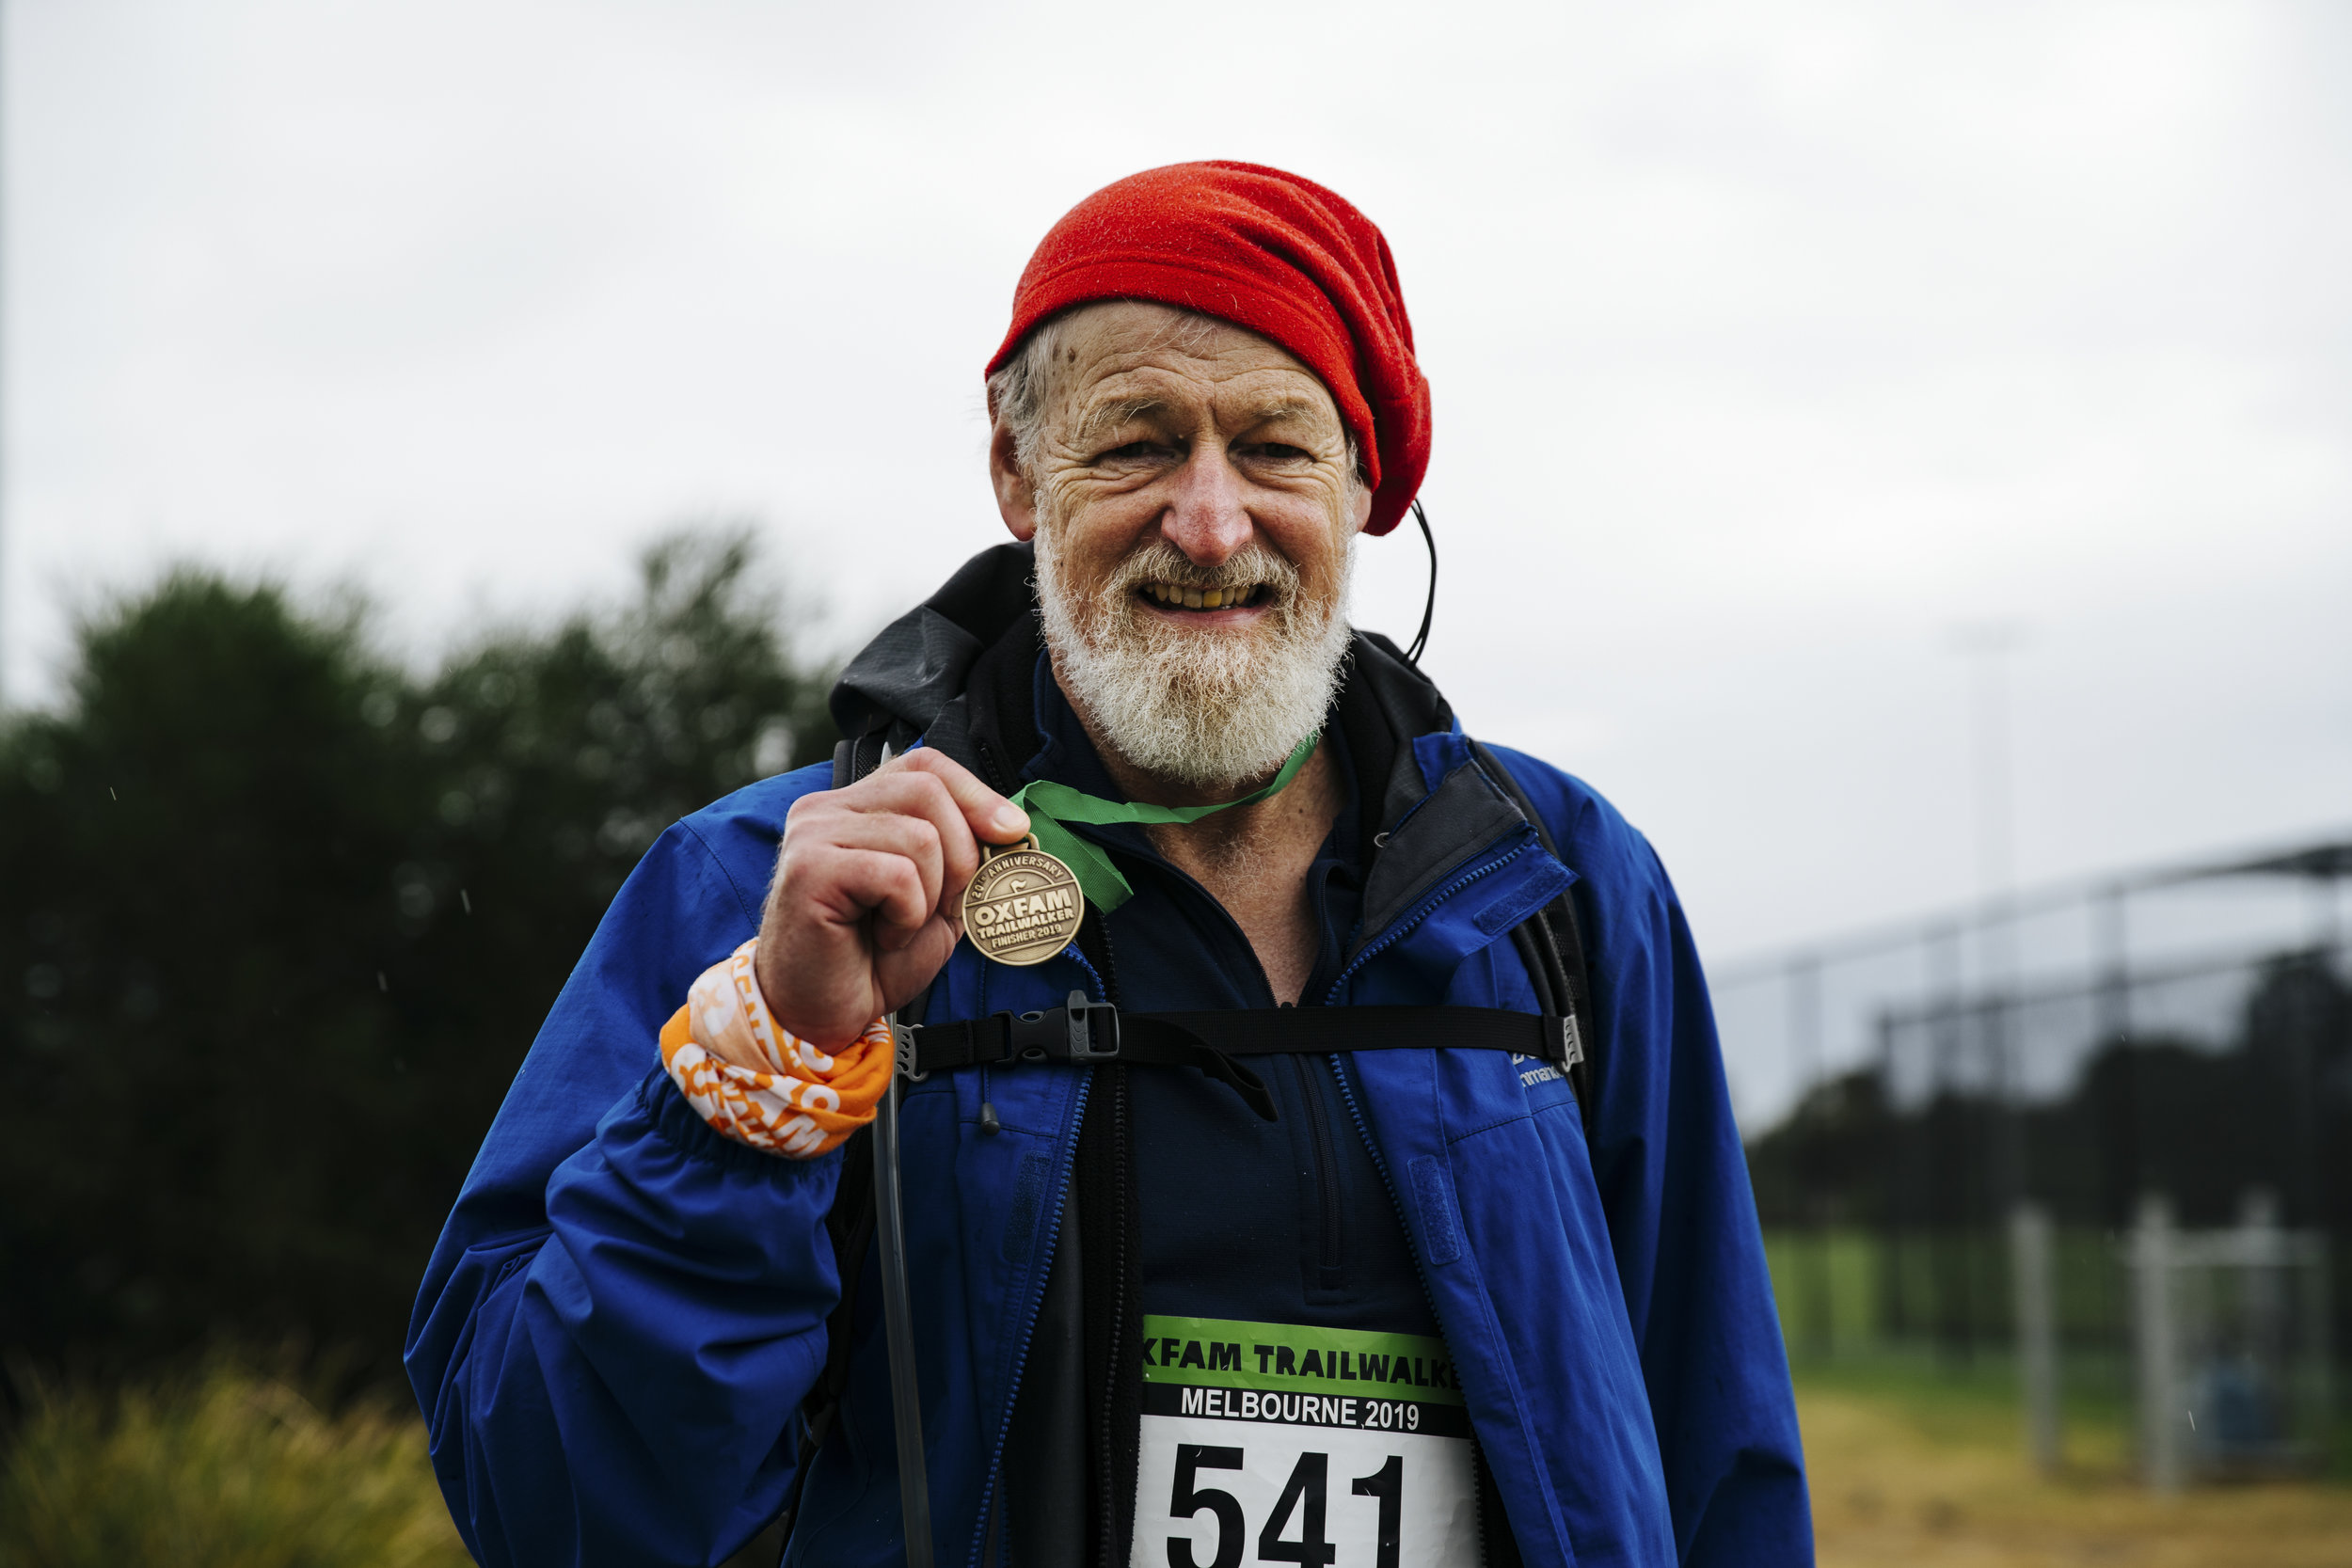 RS95984_Trailwalker_Sam_Biddle-05910.jpg